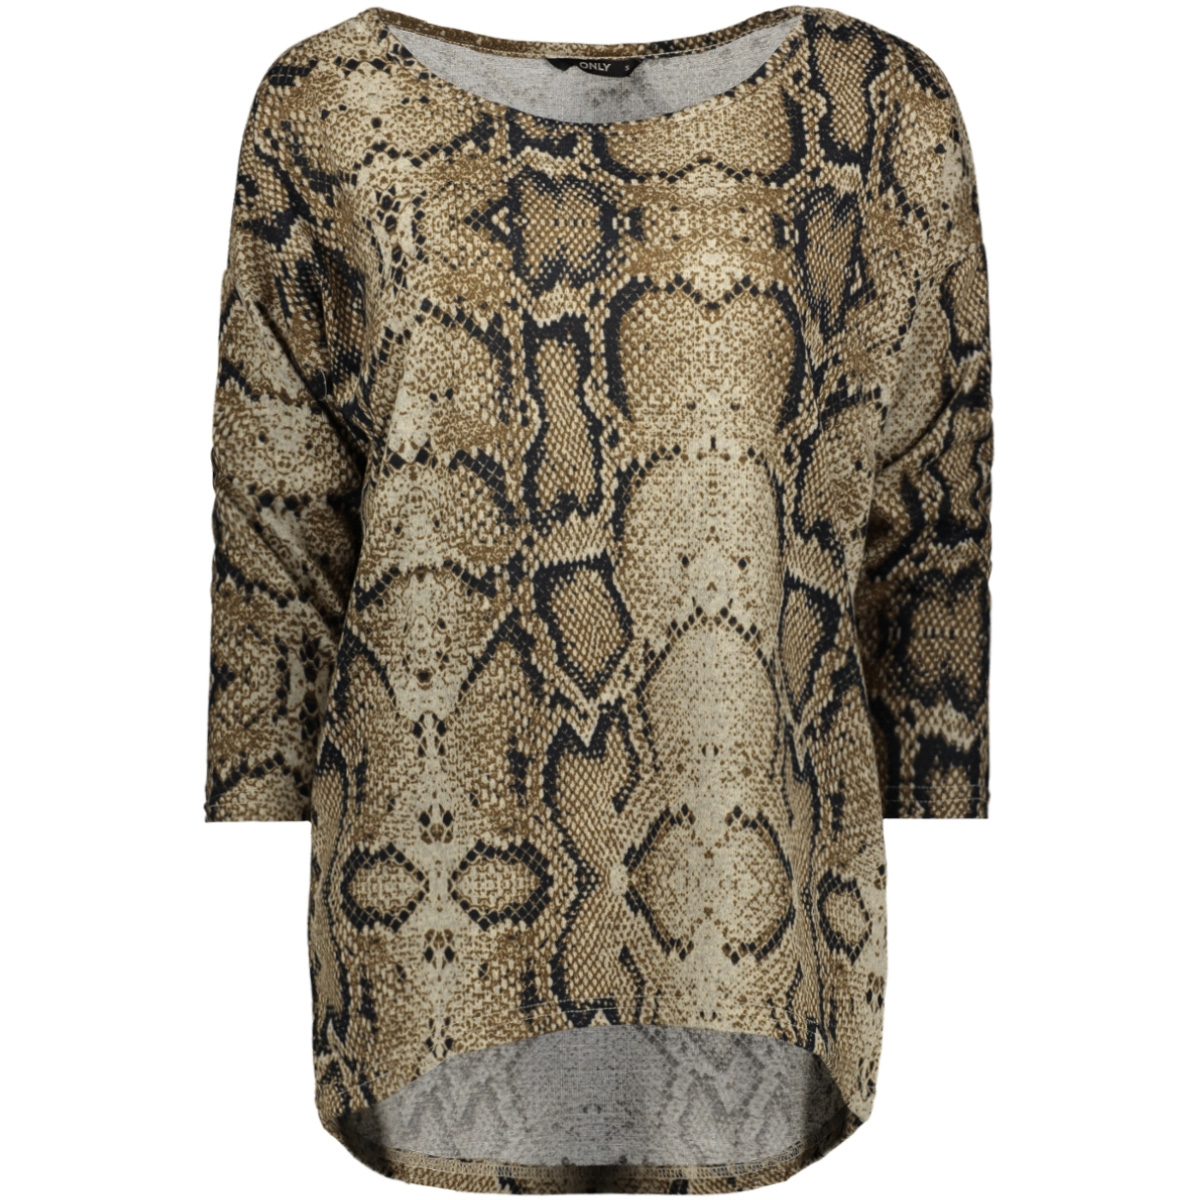 onlelcos 4/5 aop top jrs noos 15144286 only t-shirt black/snake aw19